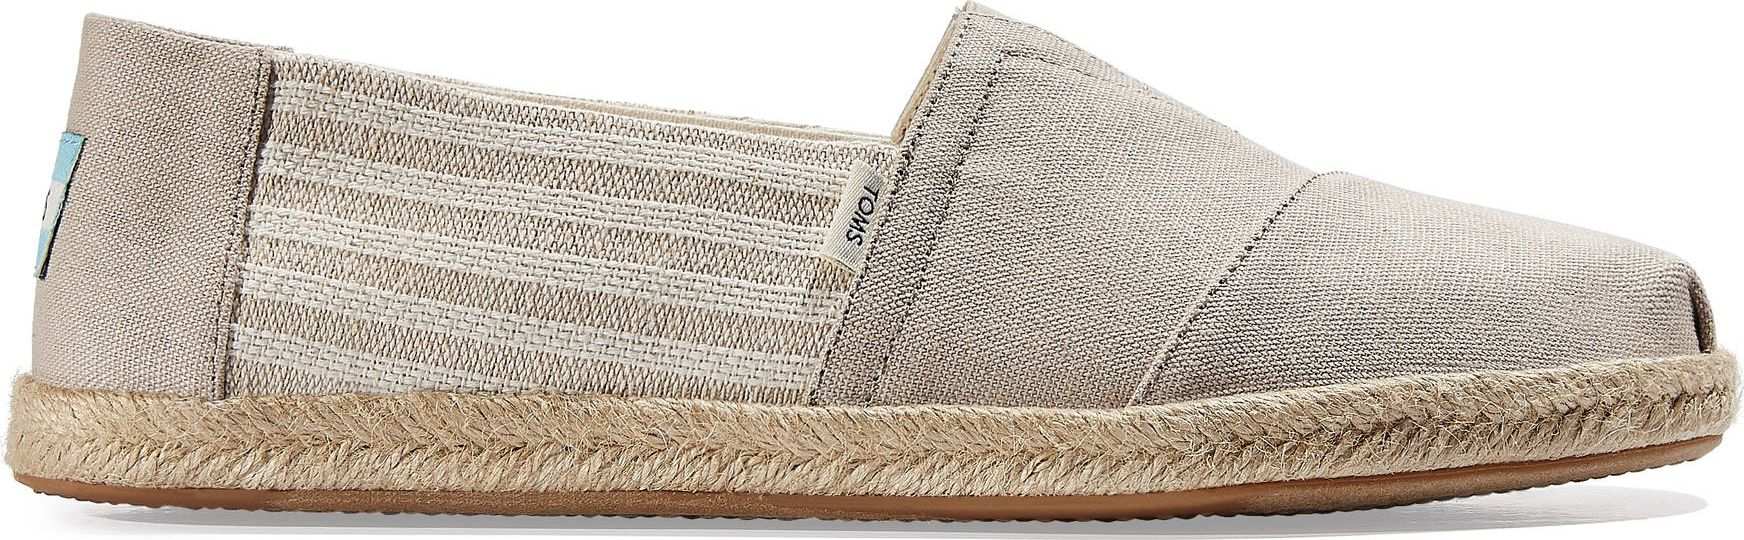 TOMS University Stripes Men's Rope Alpargata Oxford Tan 46